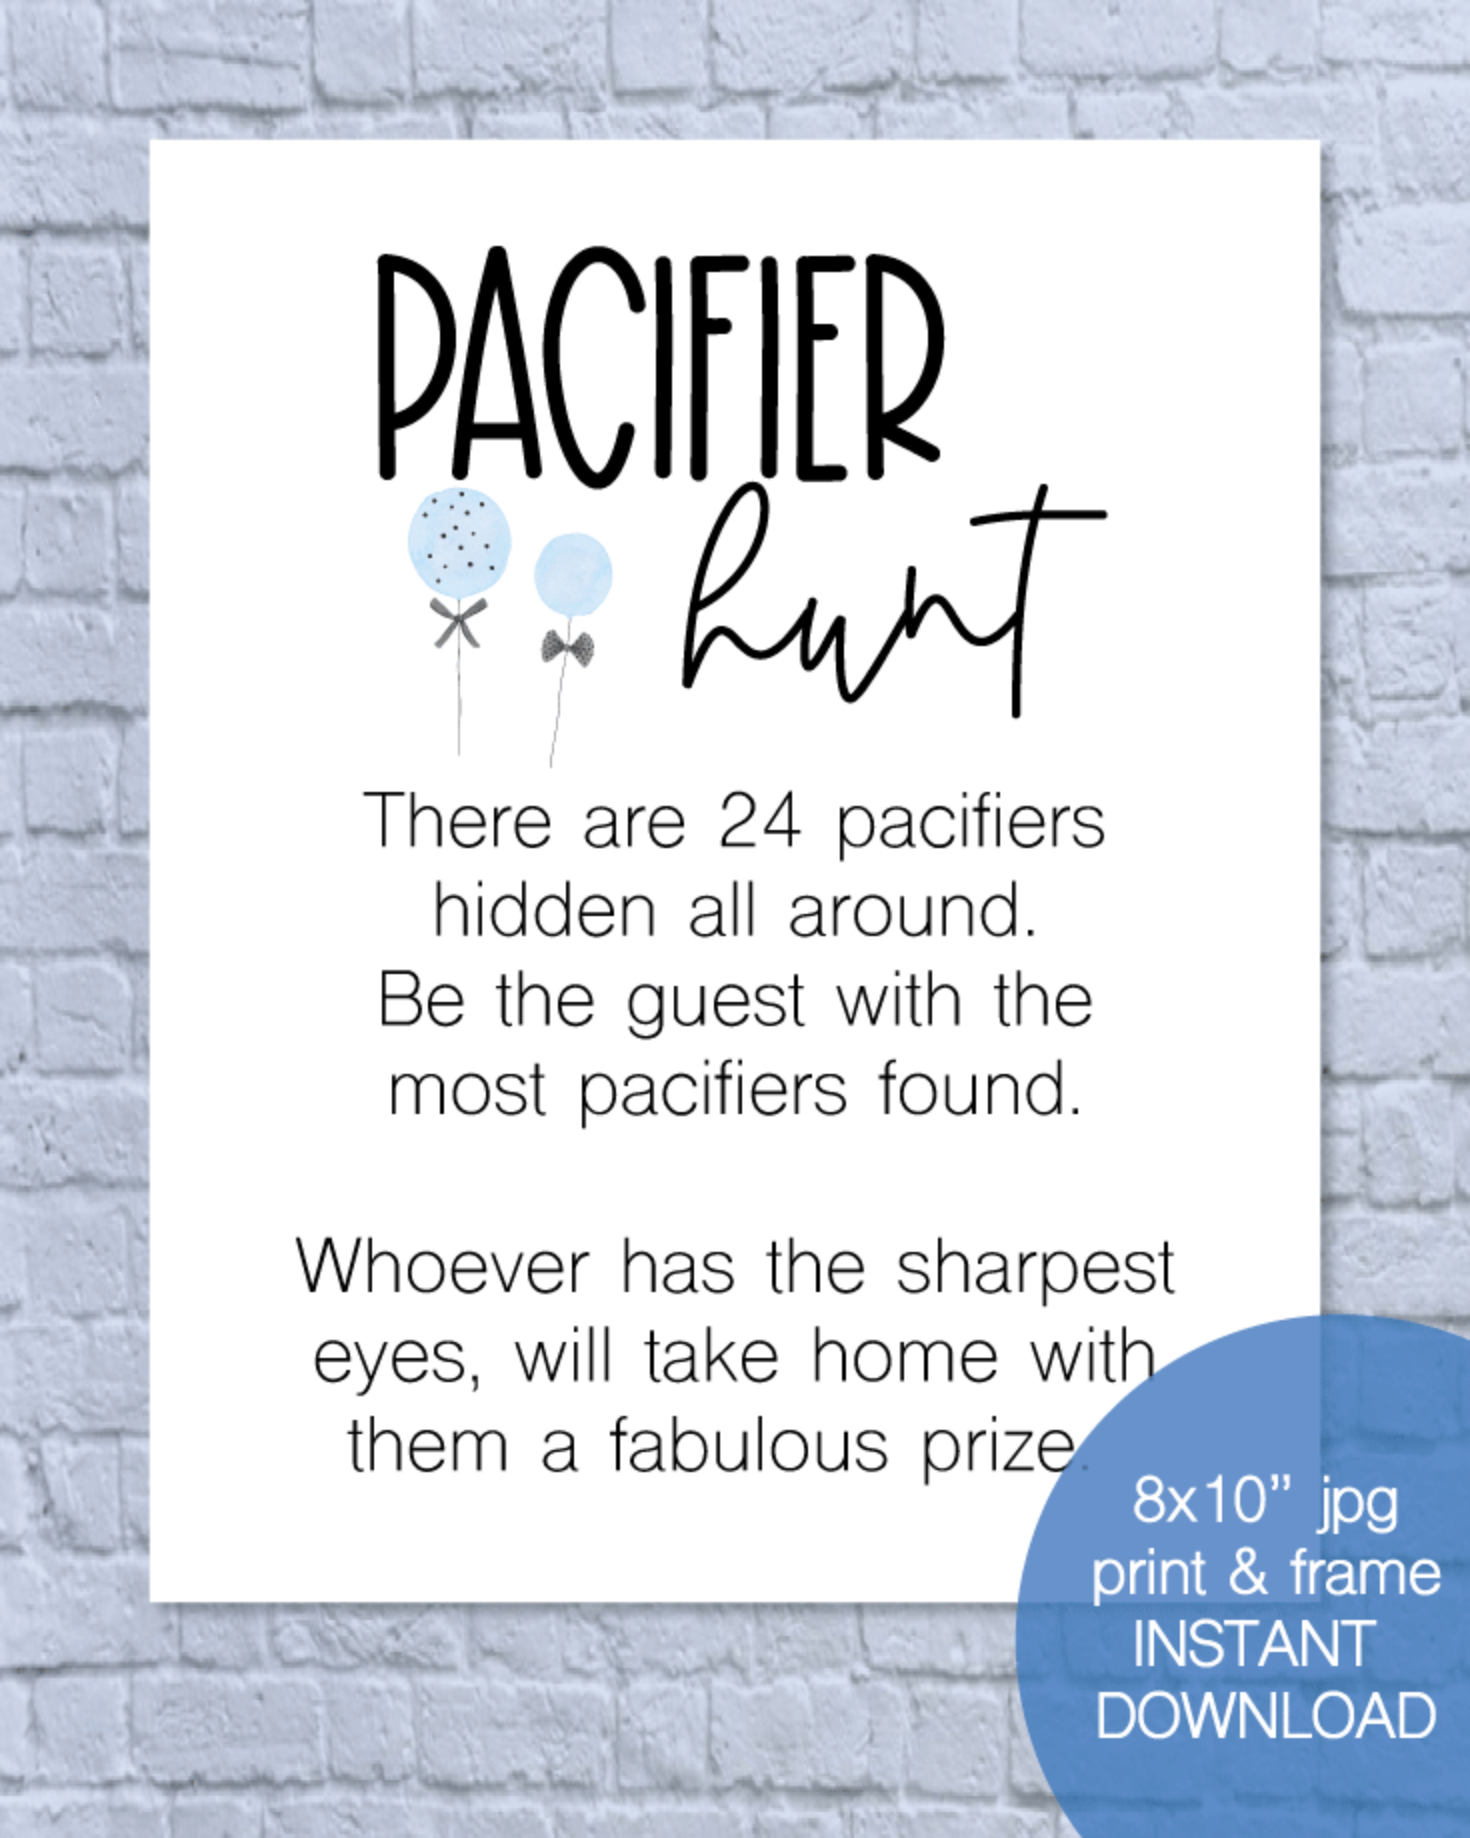 Printable Pacifier Hunt Baby Shower Game Sign - Blue Balloons